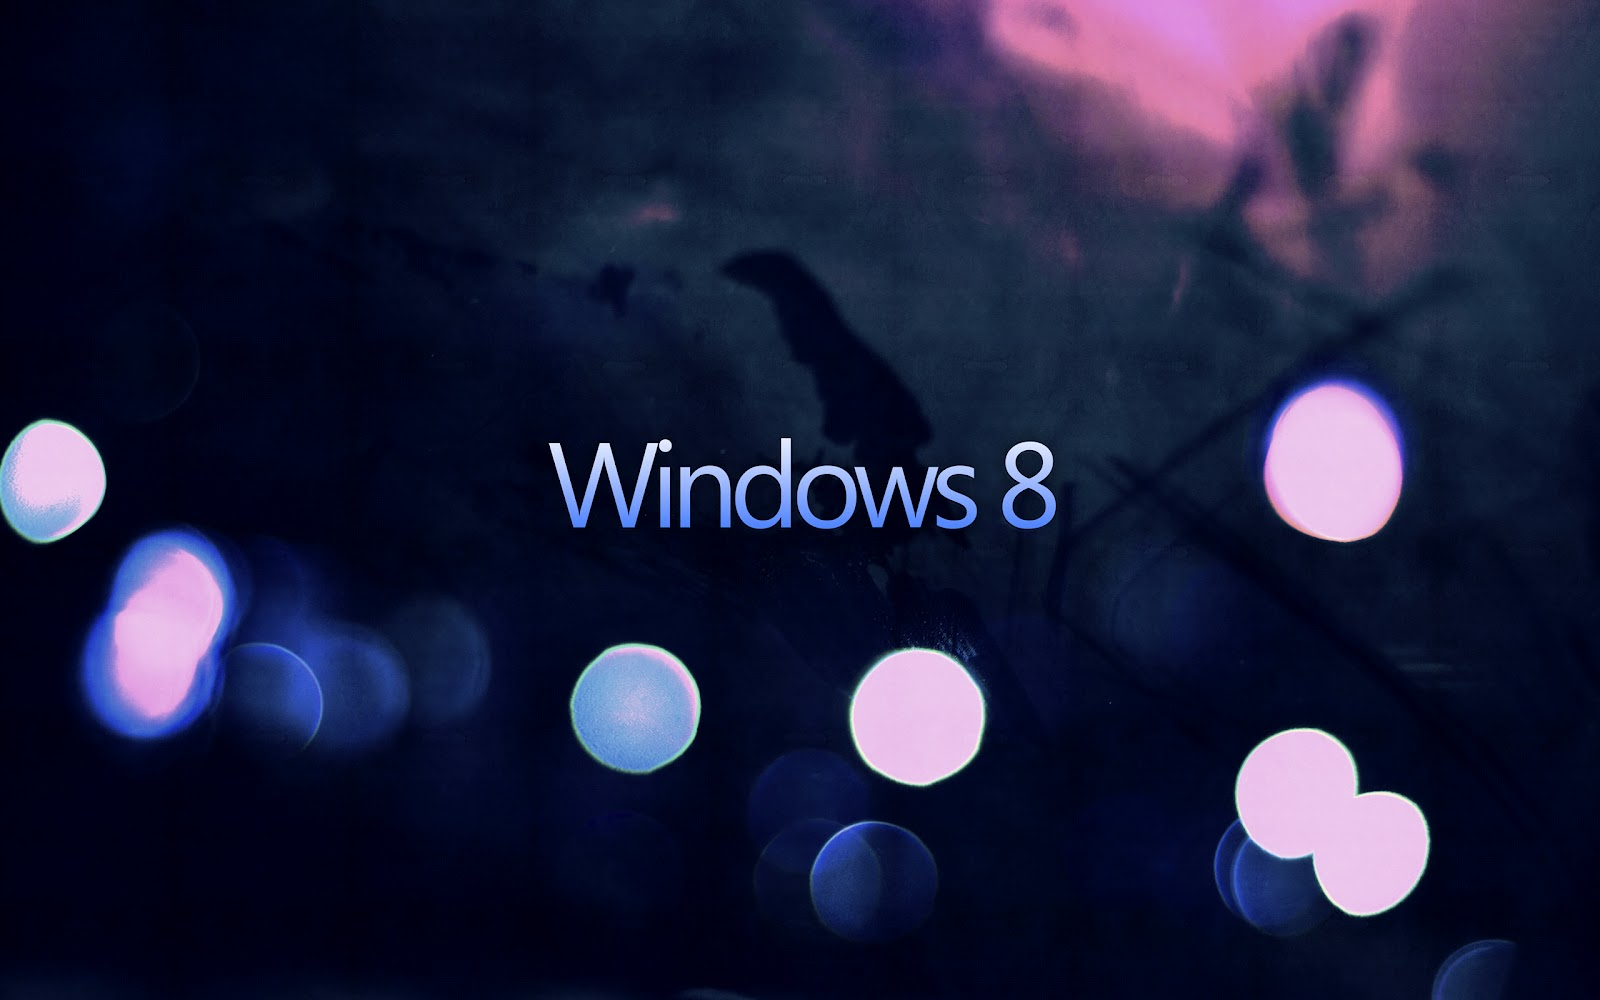 Top 12 Cool Windows 8 HD wallpapers for desktop backgrounds